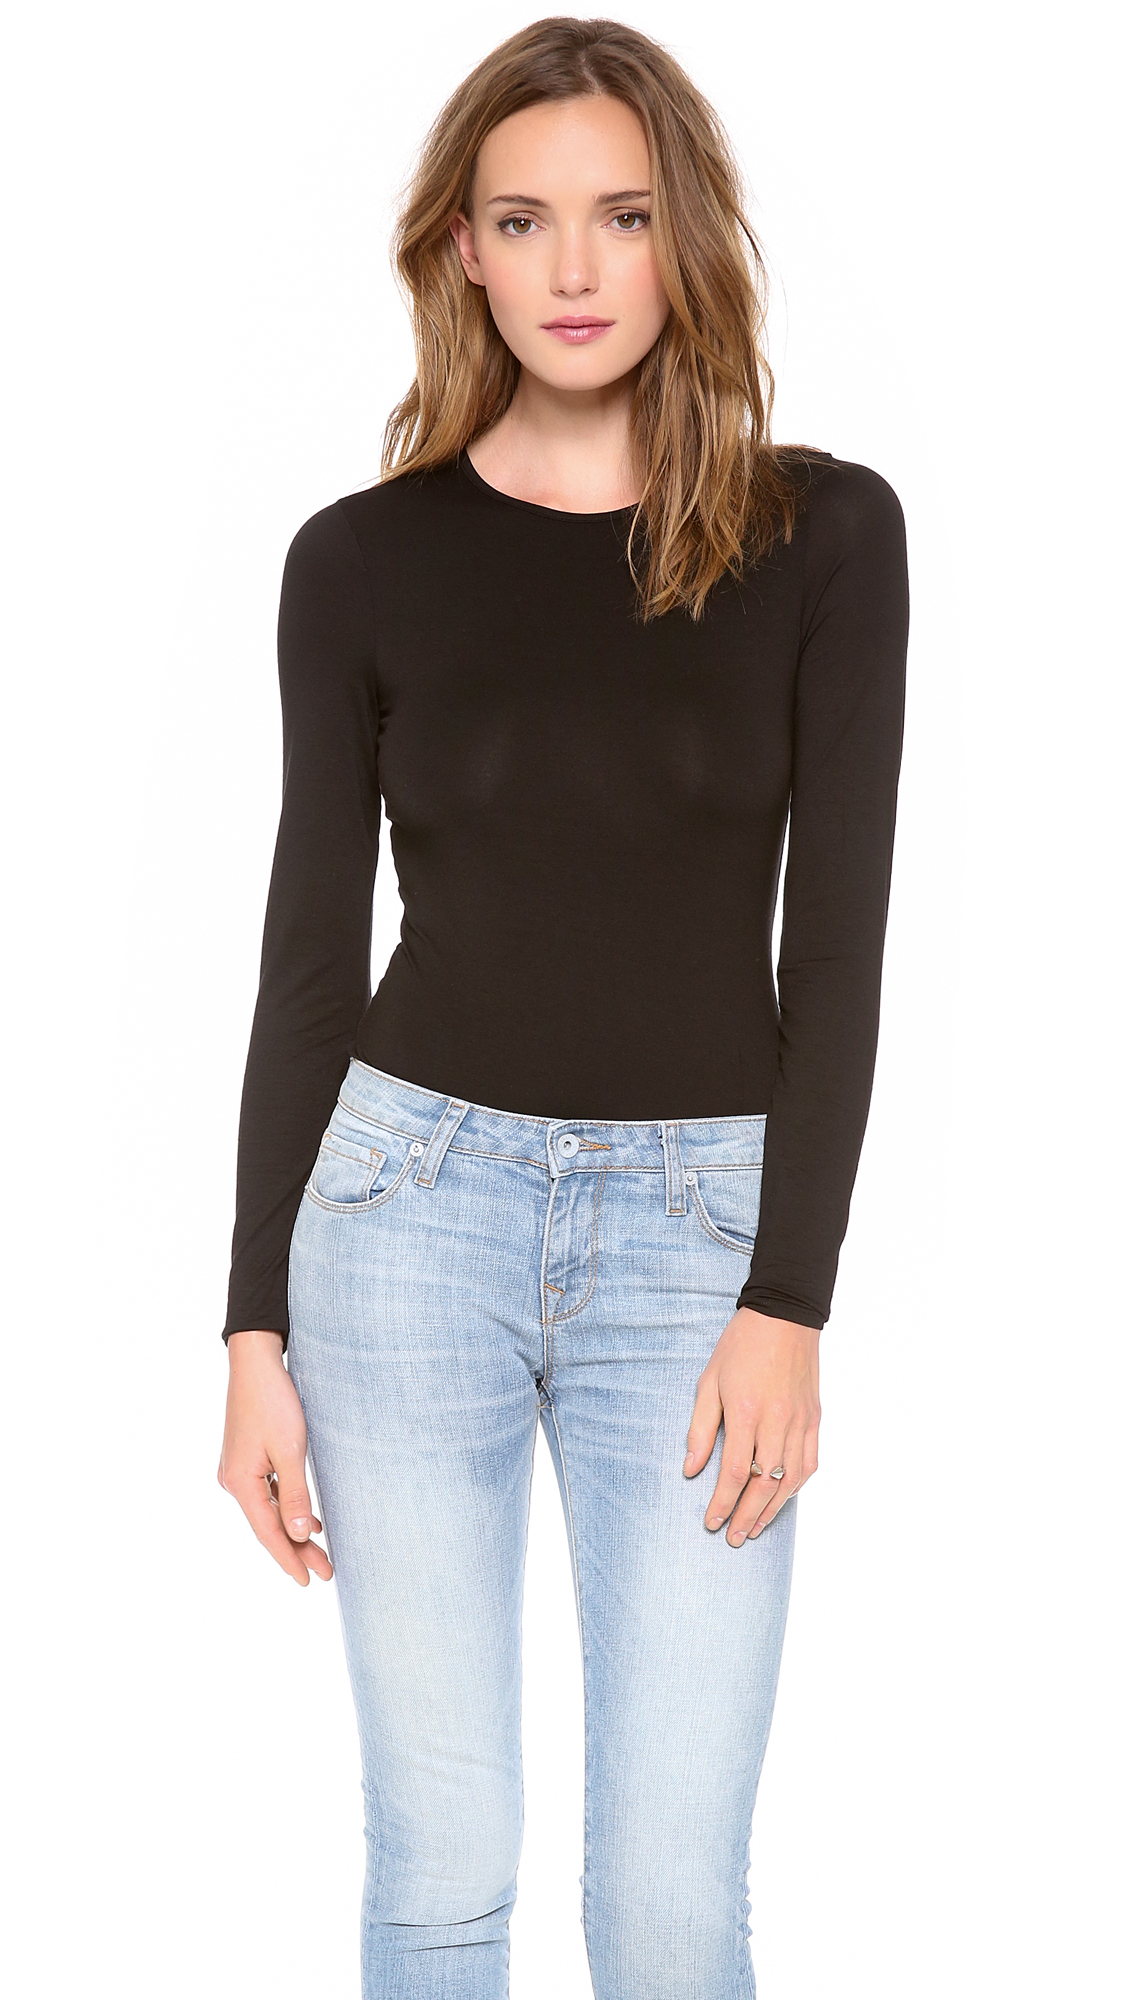 Three Dots Long Sleeve Bodysuit with Crew Neck in Black - Lyst